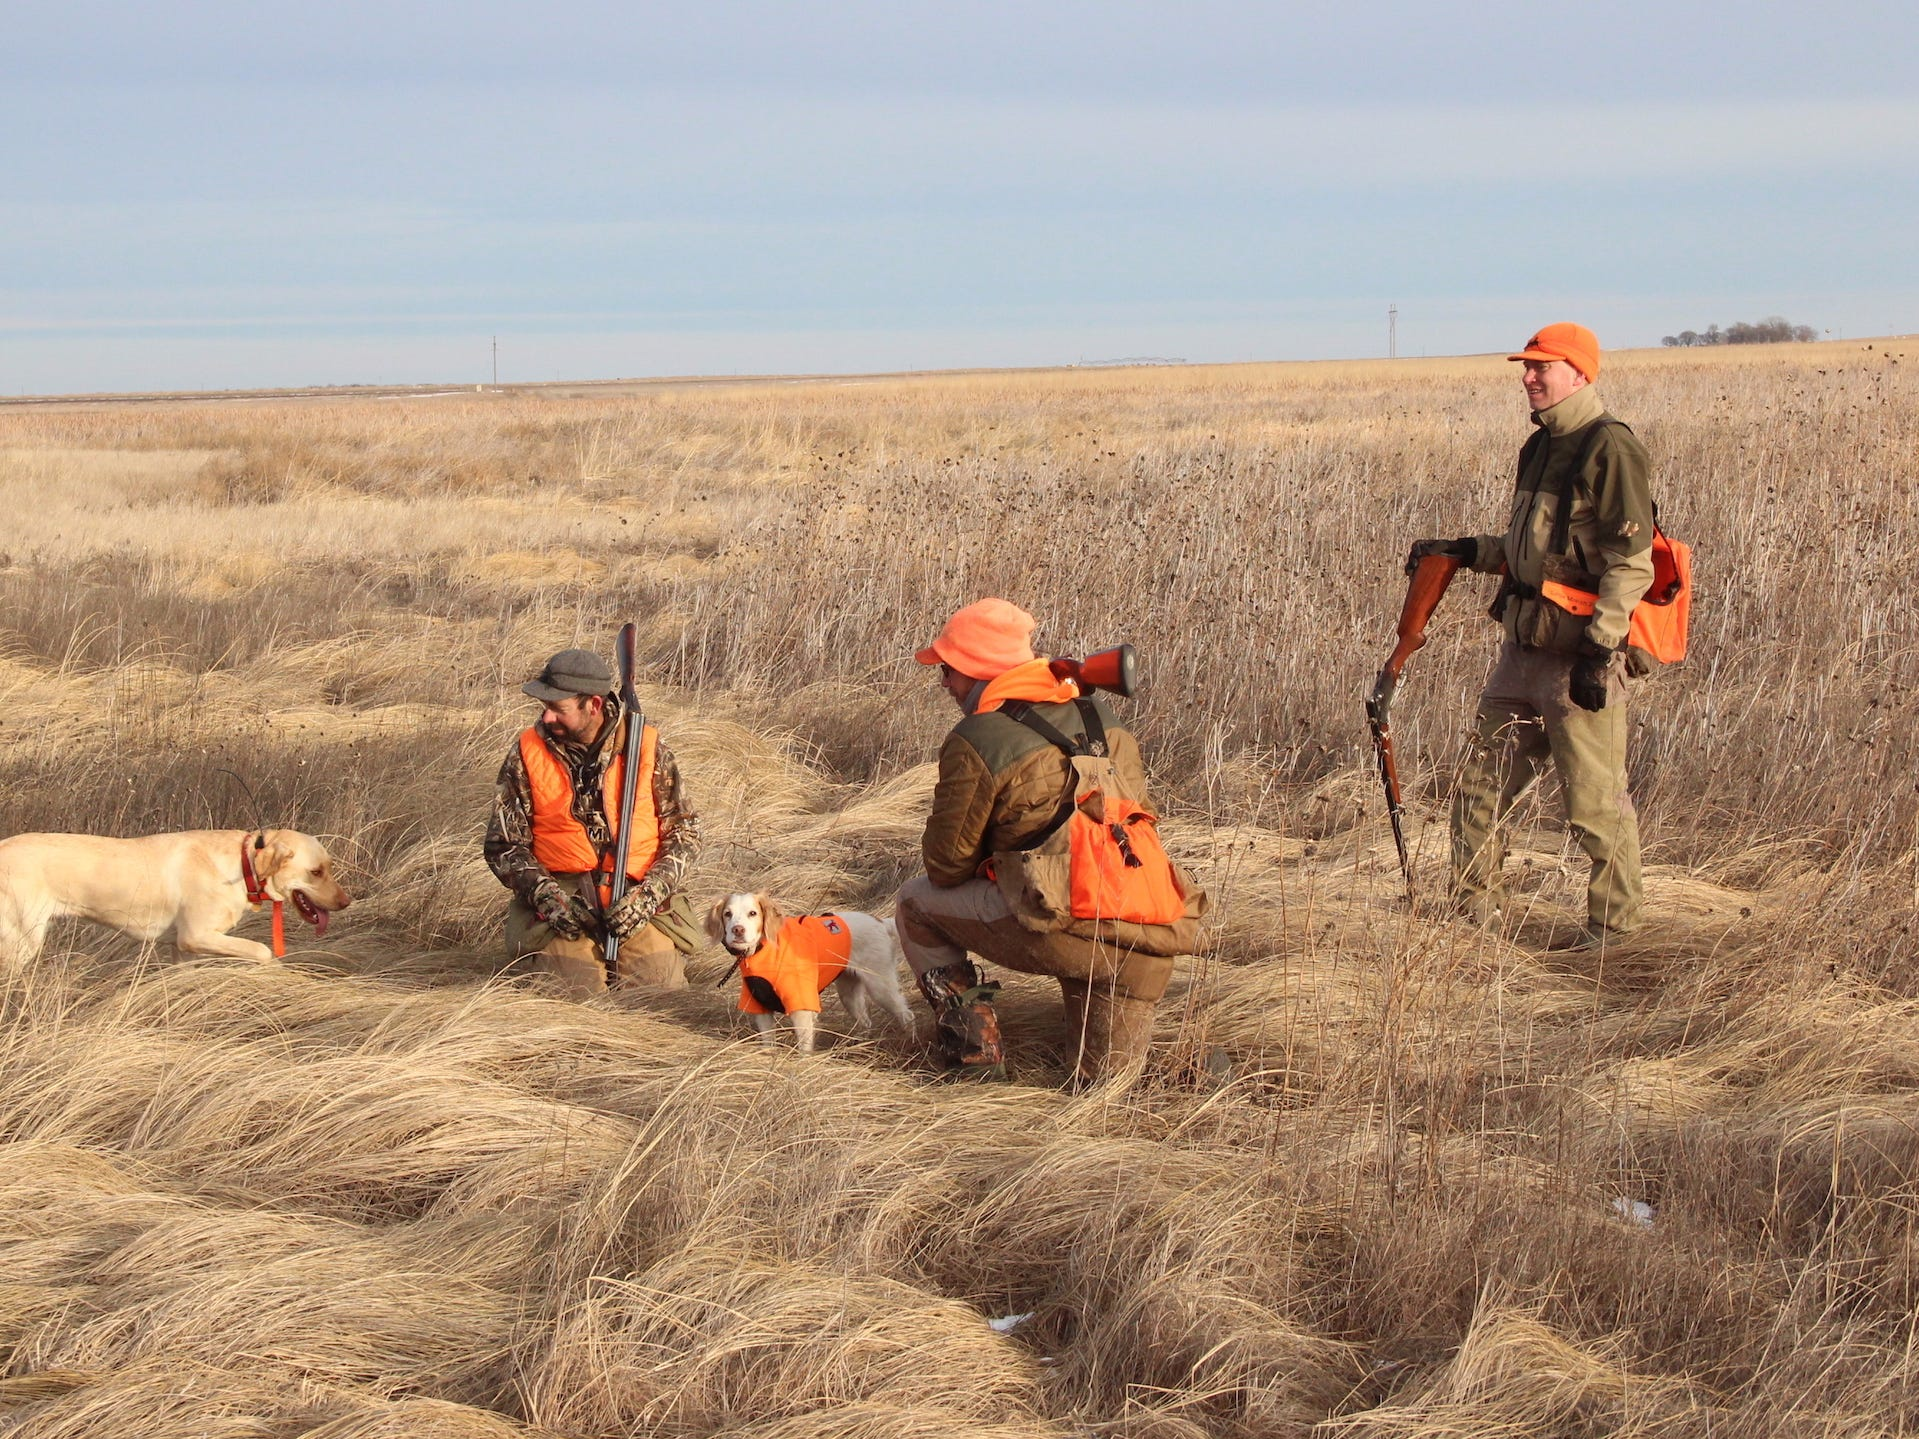 Hunters come to South Dakota from across the nation and many foreign countries to experience what is widely considered the best pheasant hunting in the world.